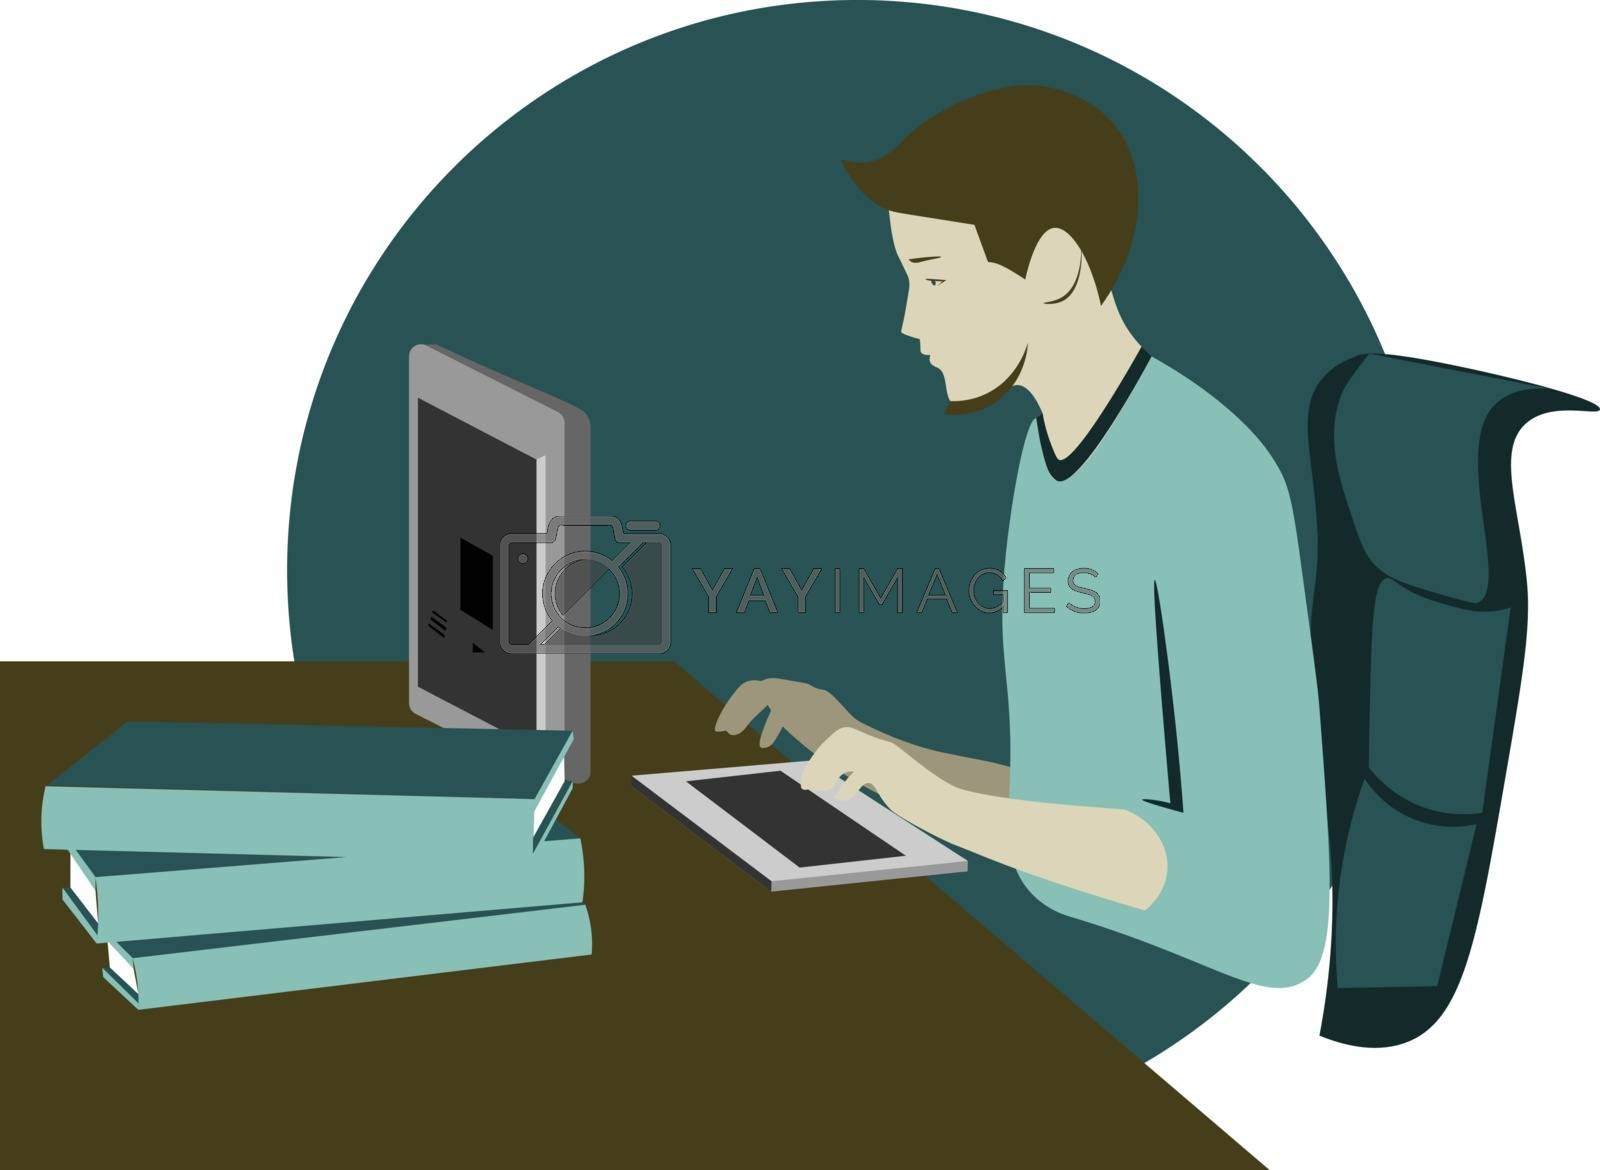 Colorful illustration of workplace and the young man sitting at the computer